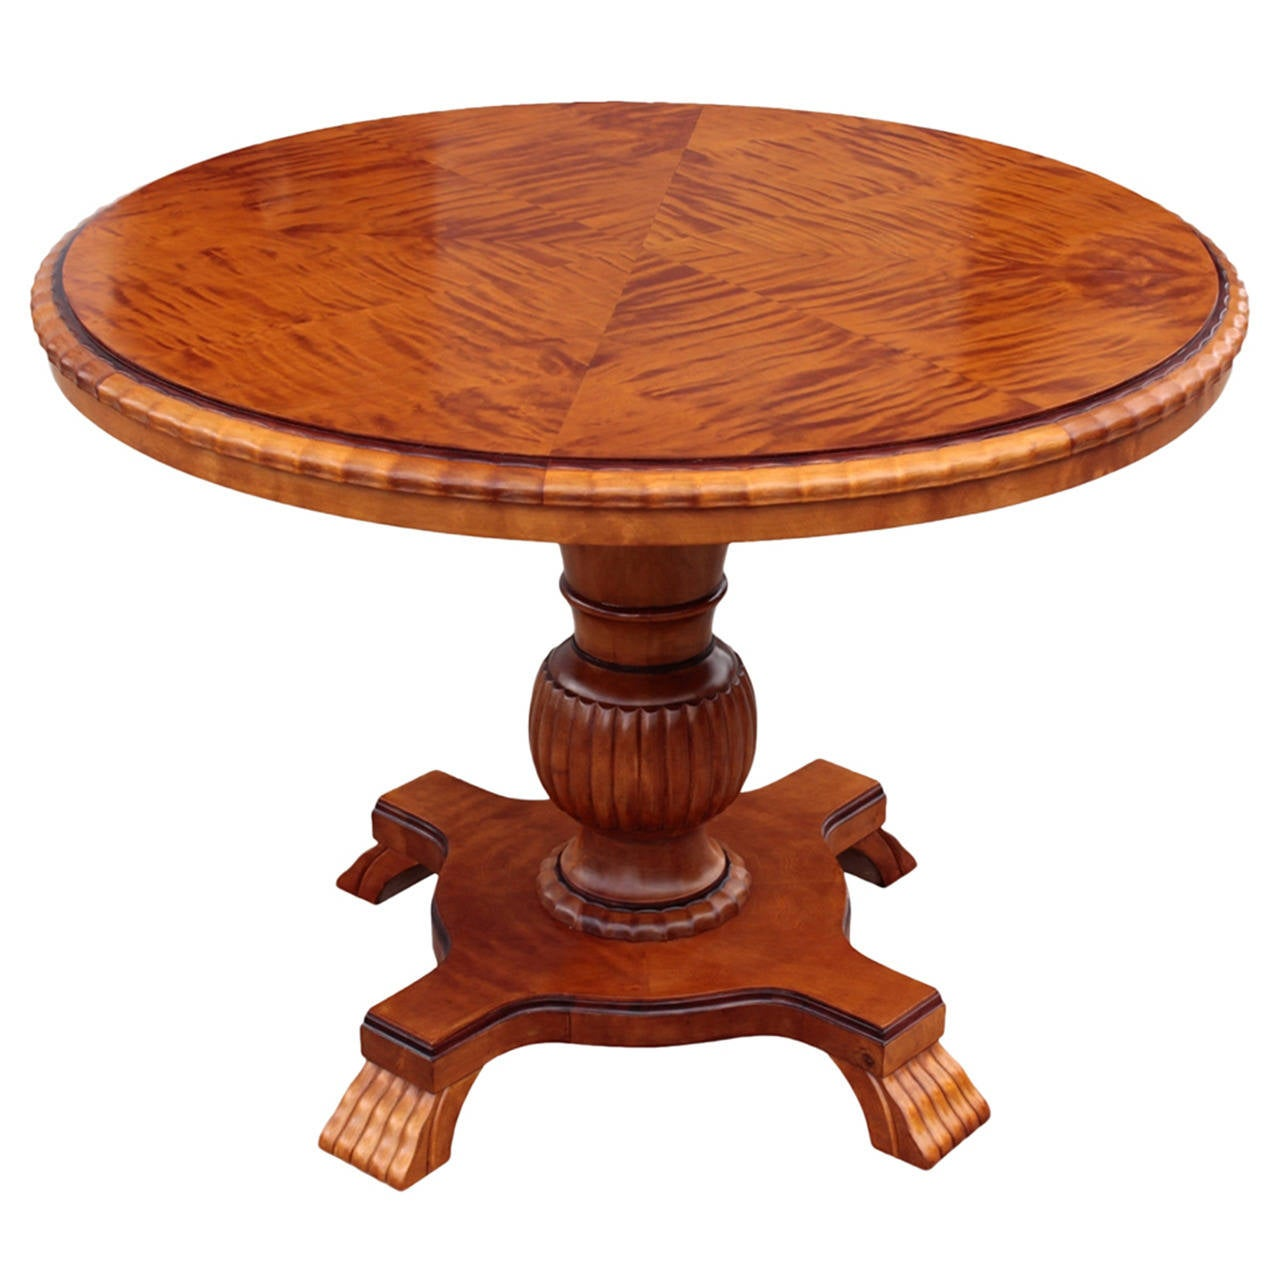 swedish art deco period round cocktail or coffee pedestal table at 1stdibs